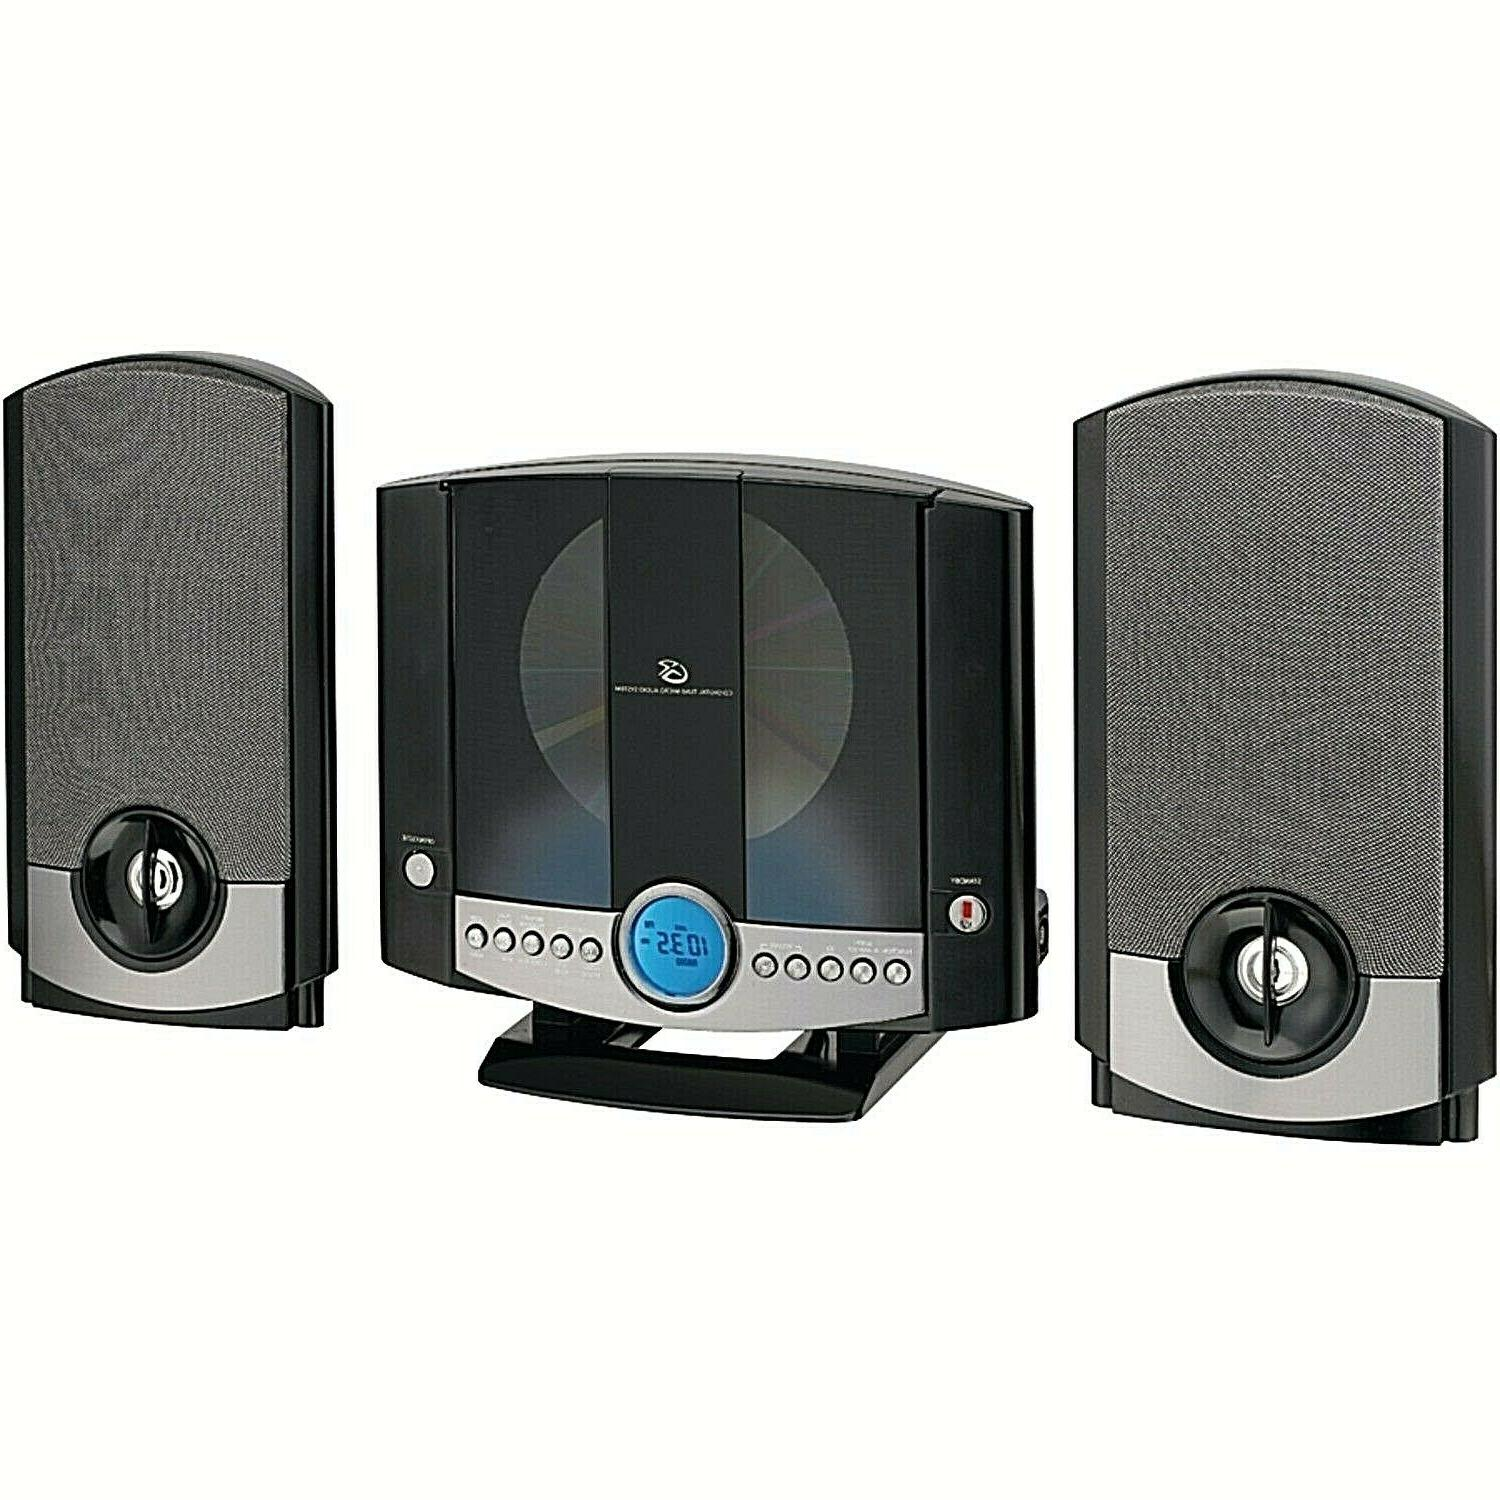 GPX Home Stereo System AUX Music CD Player Clock A/FM Radio